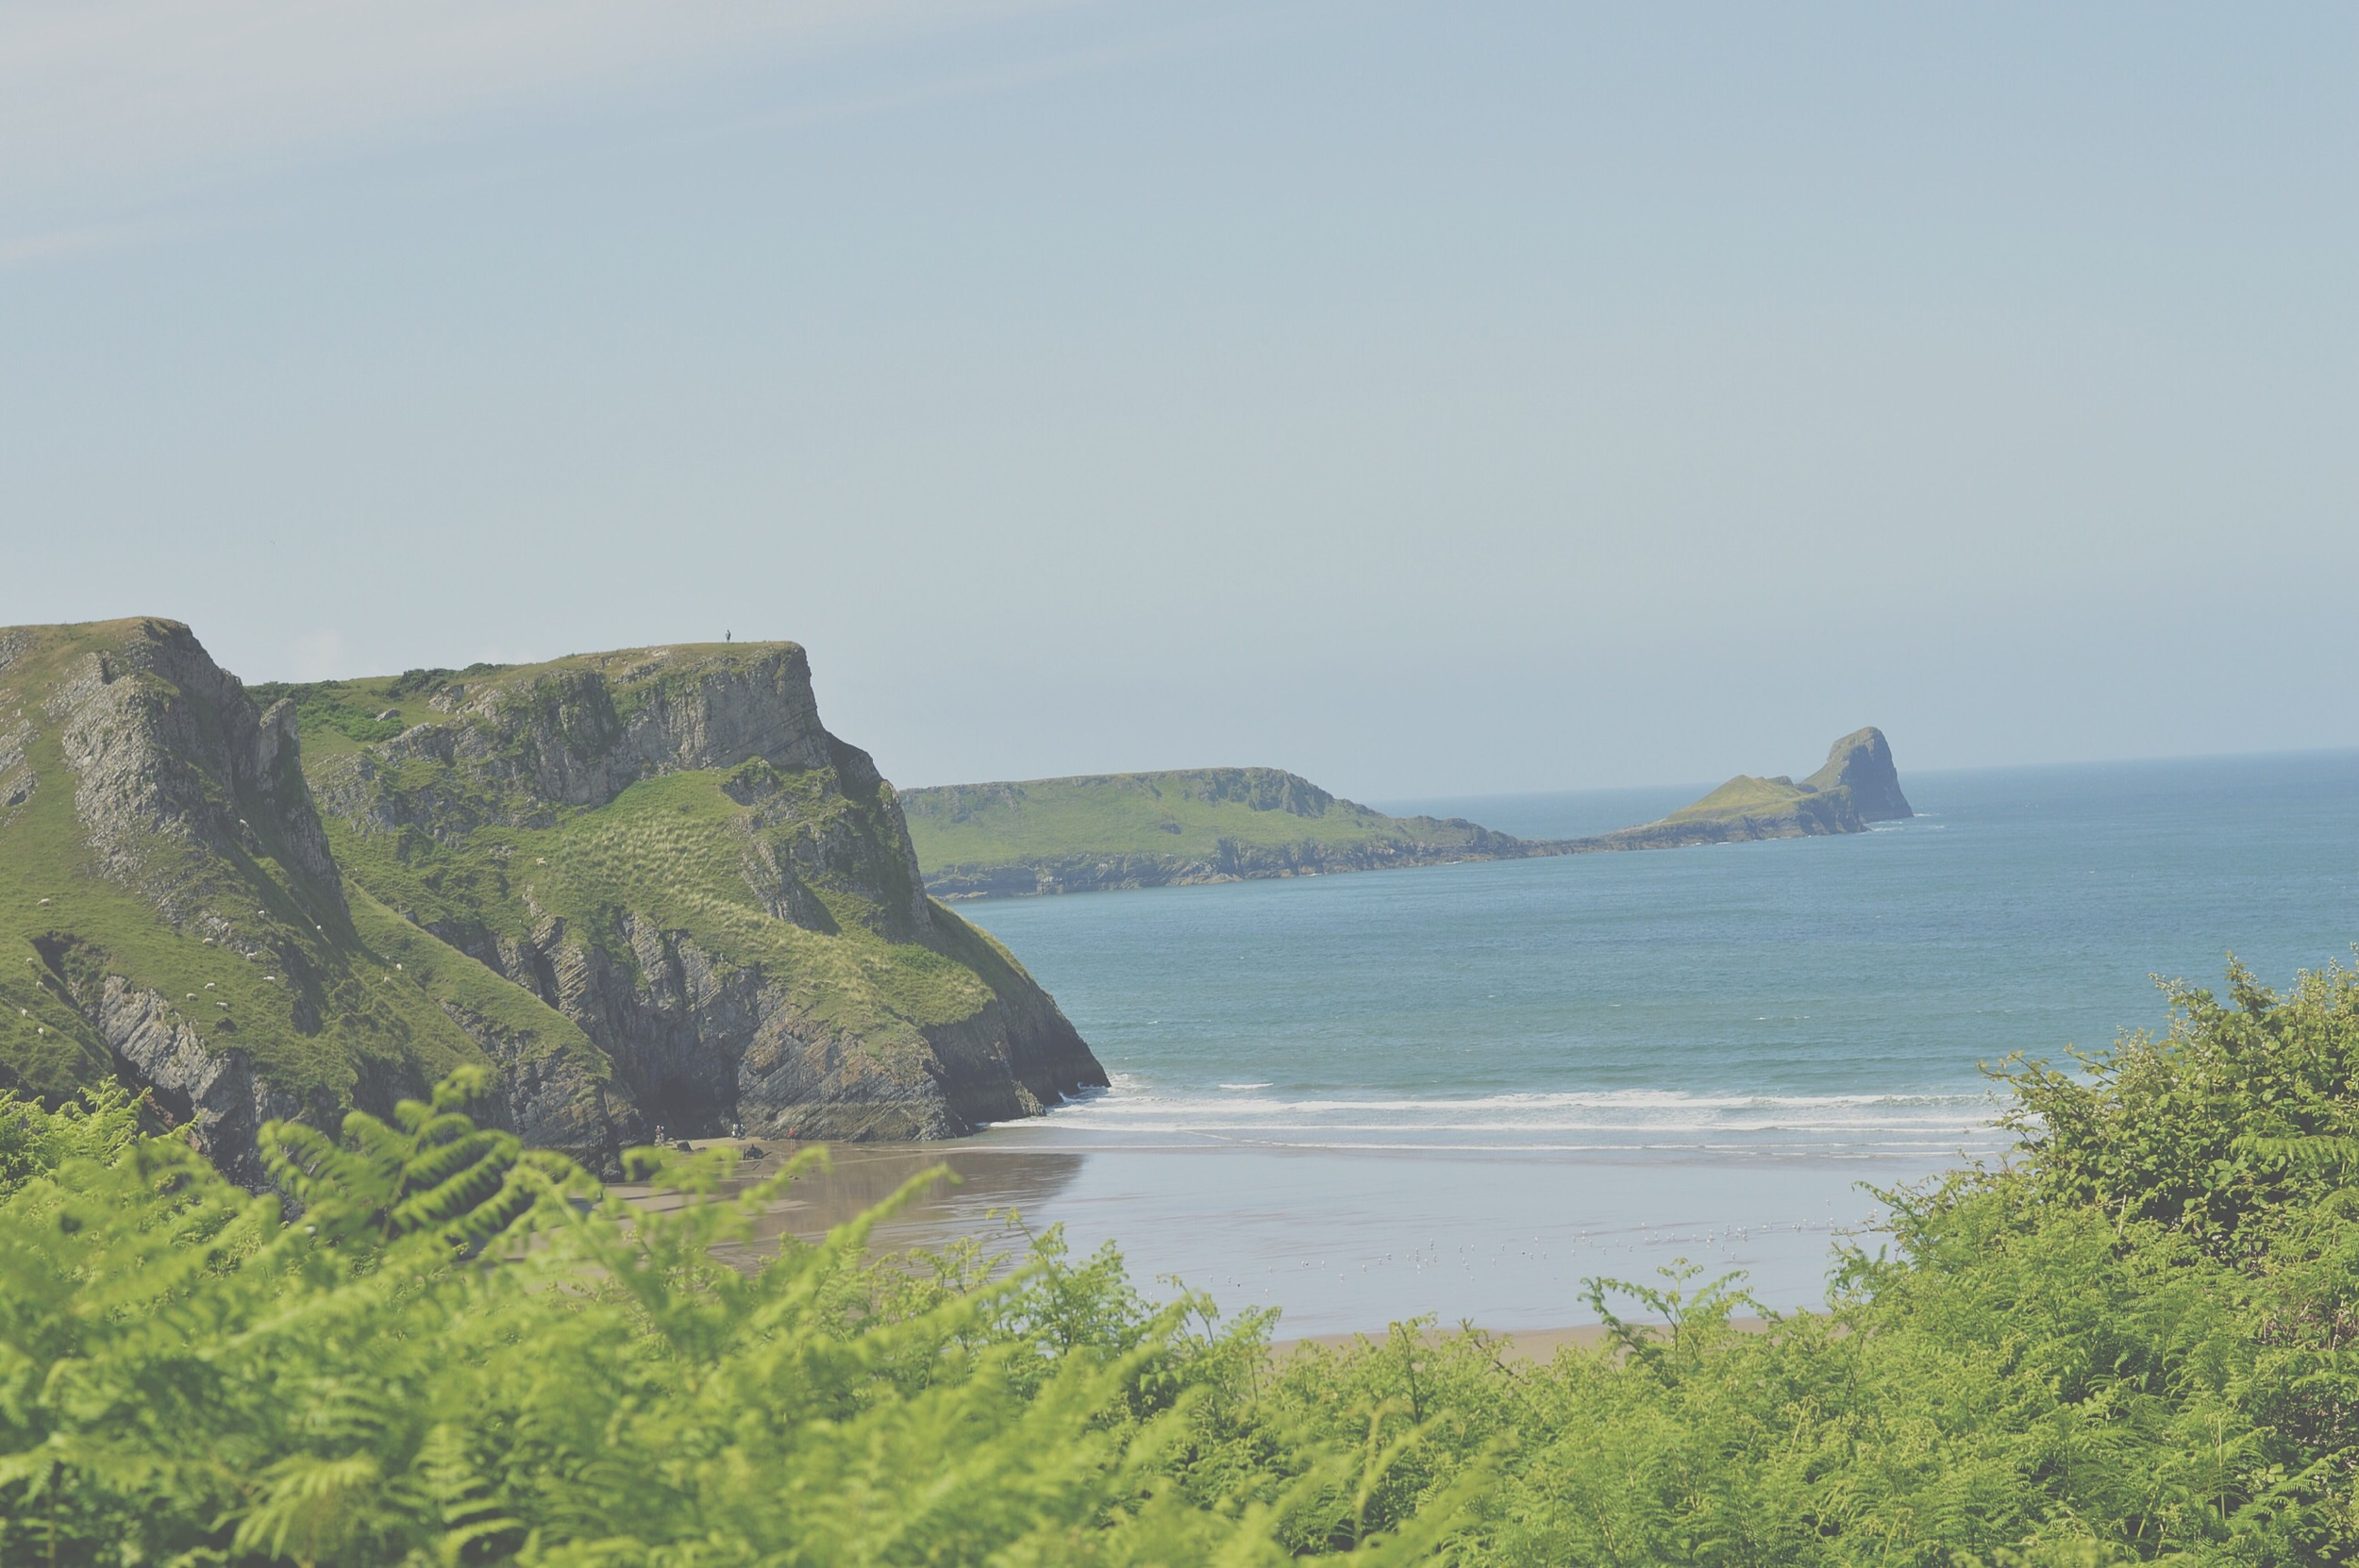 Looking back towards the cliff top and Worms head.